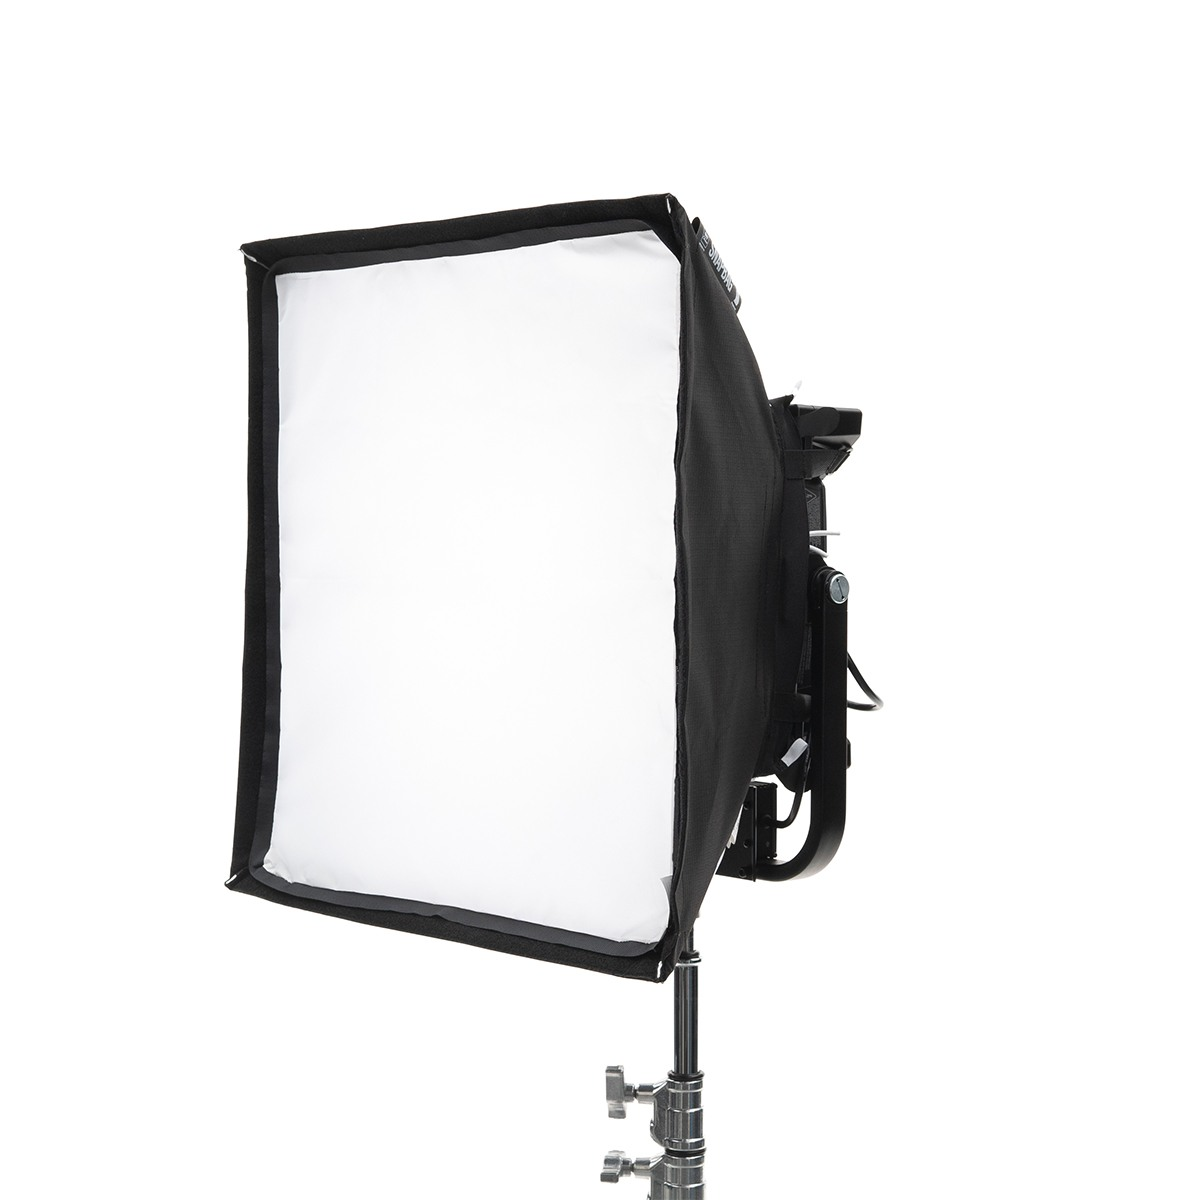 Snapbag Softbox Gemini 1x1 with removable baffle